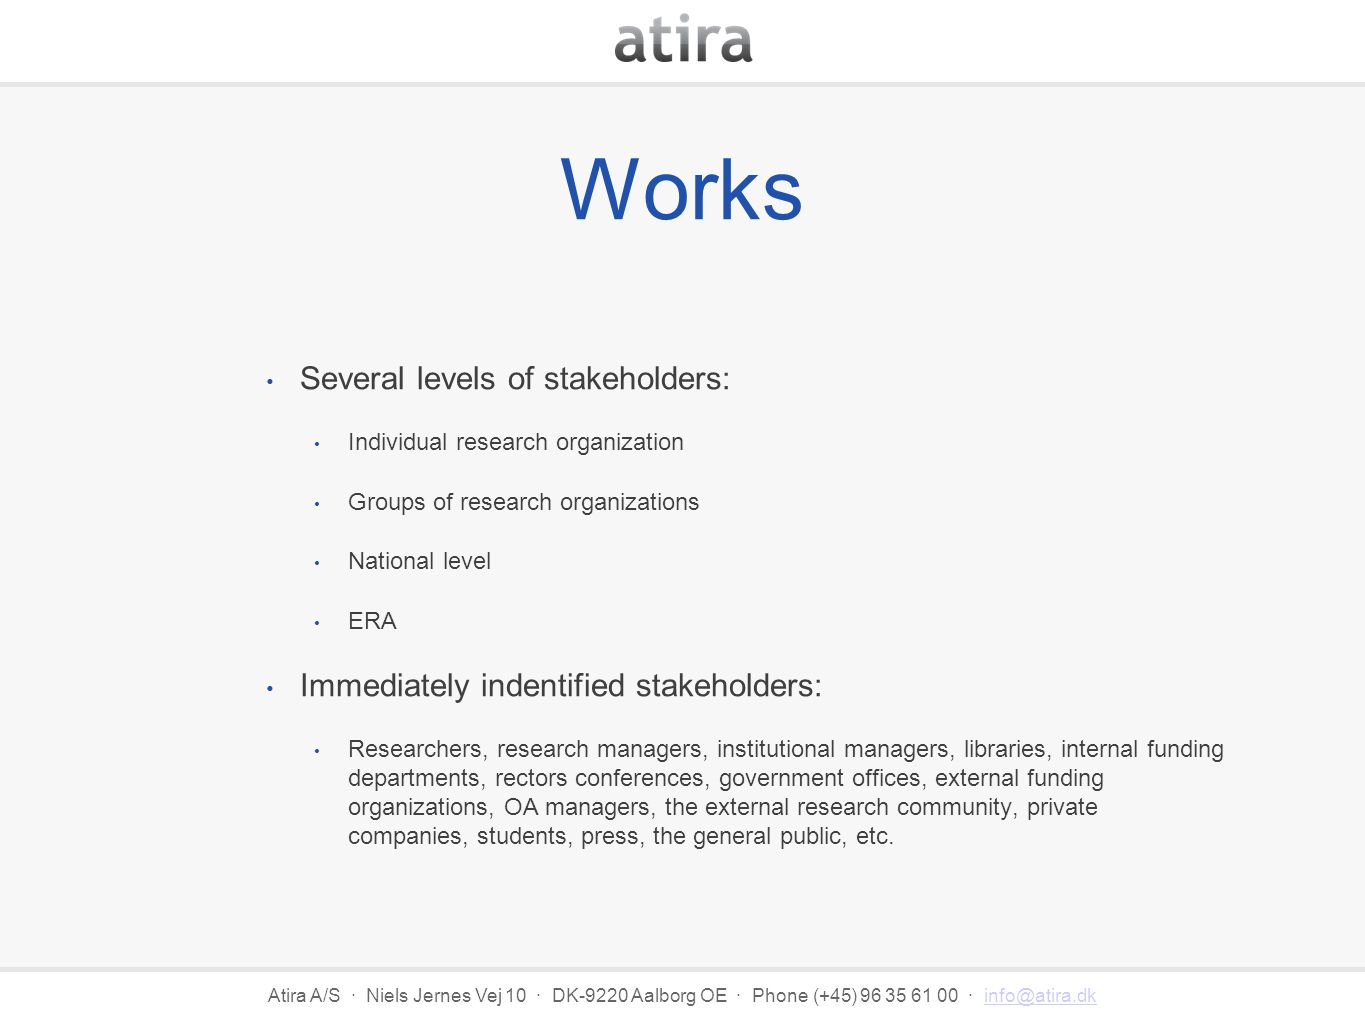 Atira A/S · Niels Jernes Vej 10 · DK-9220 Aalborg OE · Phone (+45) 96 35 61 00 · info@atira.dkinfo@atira.dk Works Several levels of stakeholders: Individual research organization Groups of research organizations National level ERA Immediately indentified stakeholders: Researchers, research managers, institutional managers, libraries, internal funding departments, rectors conferences, government offices, external funding organizations, OA managers, the external research community, private companies, students, press, the general public, etc.